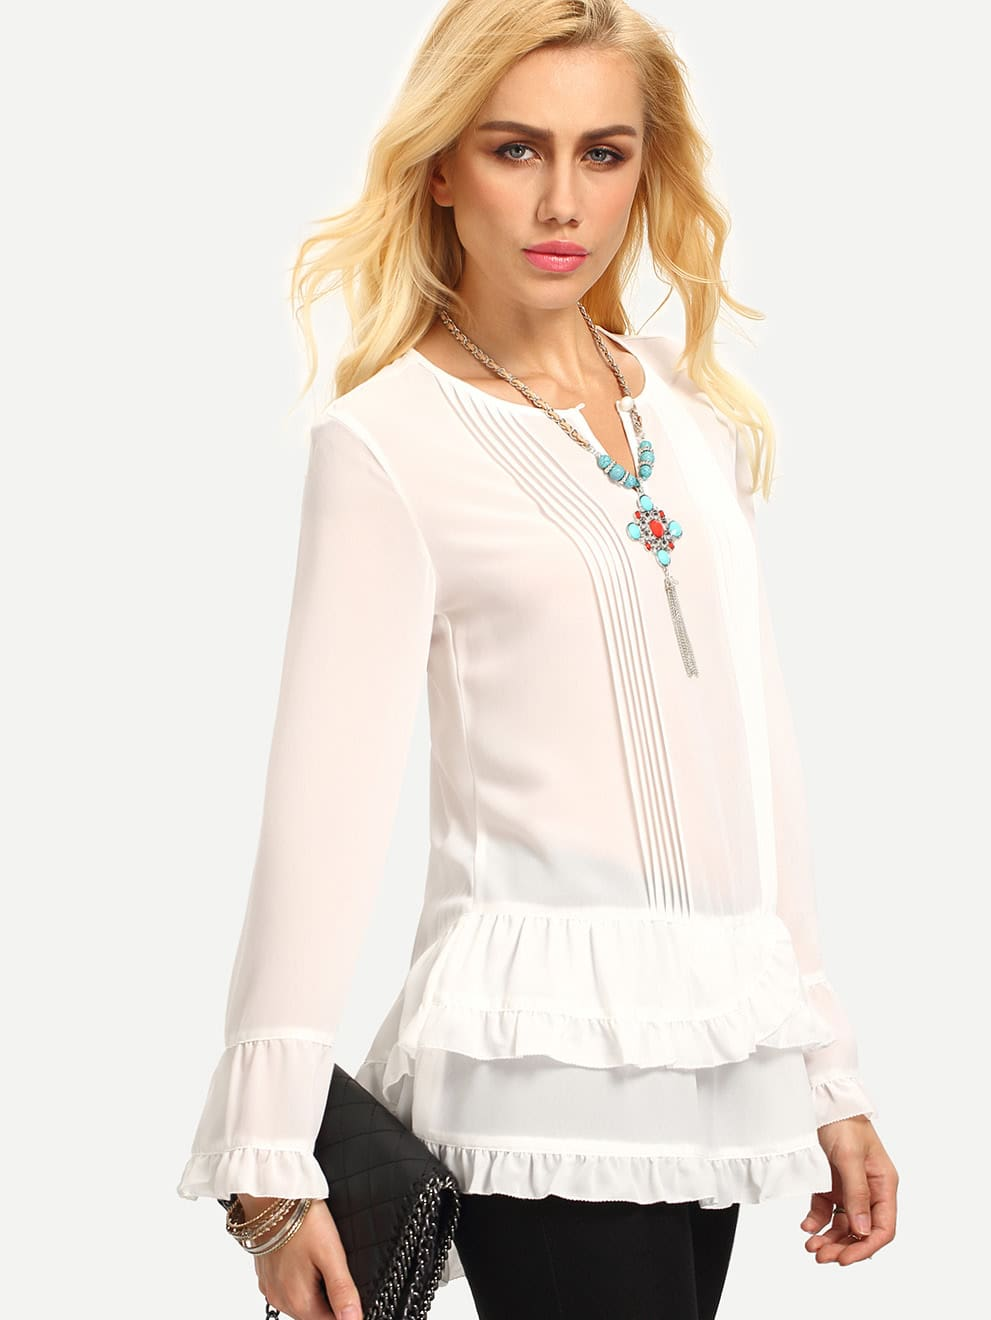 Nicole Miller New York Women's Long Sleeve Ruffle Blouse, White with Black Polka dots, XL. Best prices on White ruffle longsleeve blouse in Women's Shirts & Blouses online. Visit Bizrate to find the best deals on top brands. Read reviews on Clothing & Accessories merchants and buy with confidence. About Connexity;.